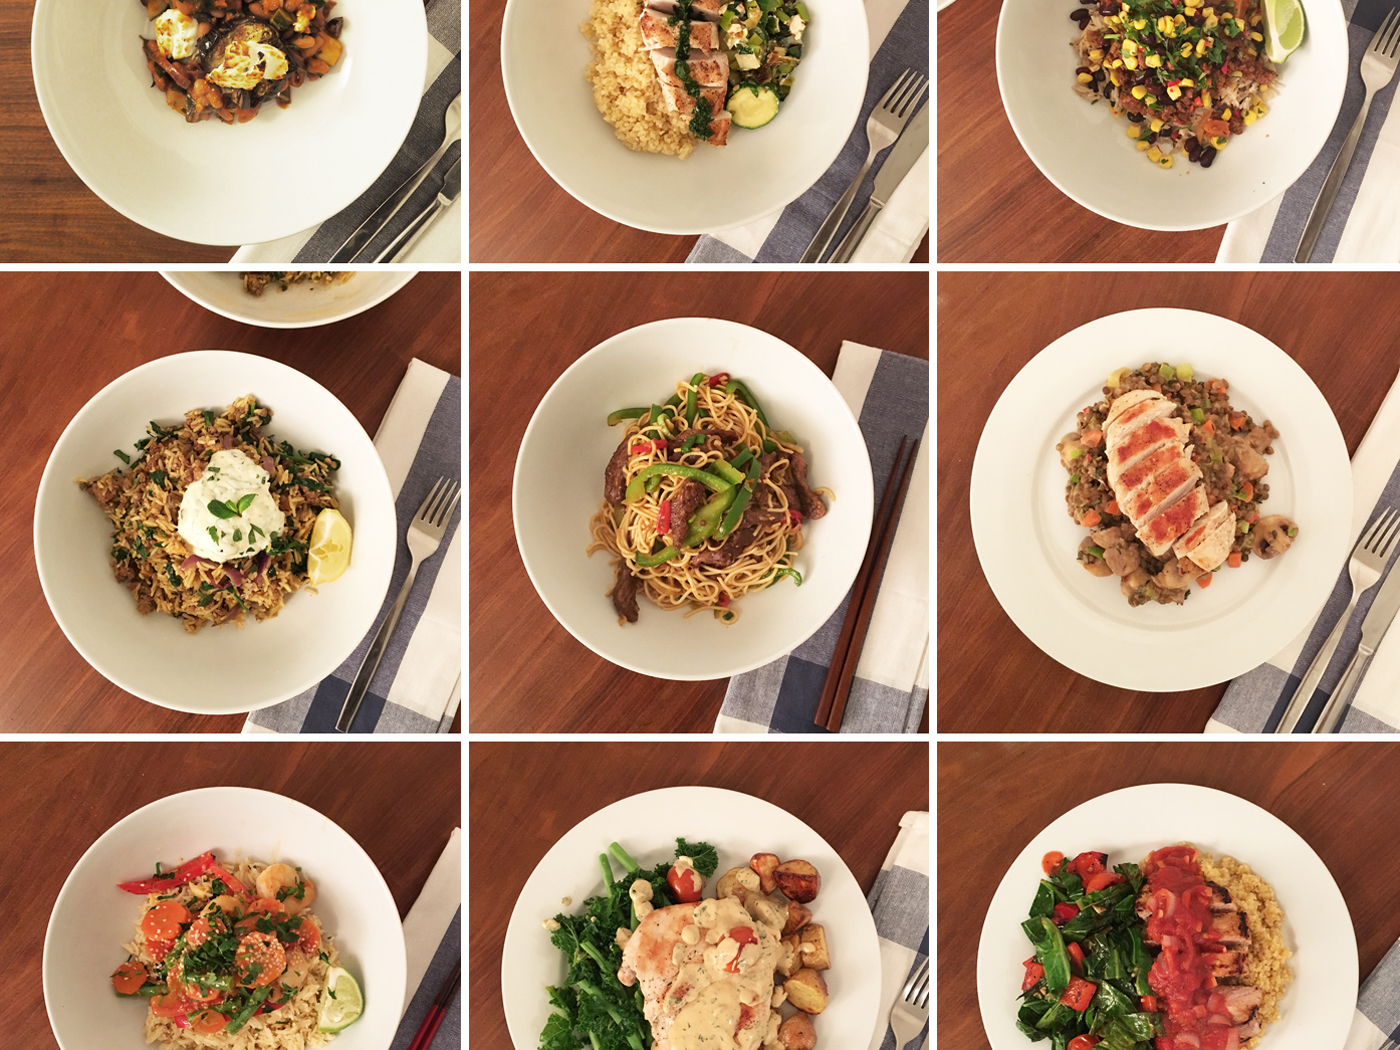 Cheap  Meal Kit Delivery Service Hellofresh Price Will Drop